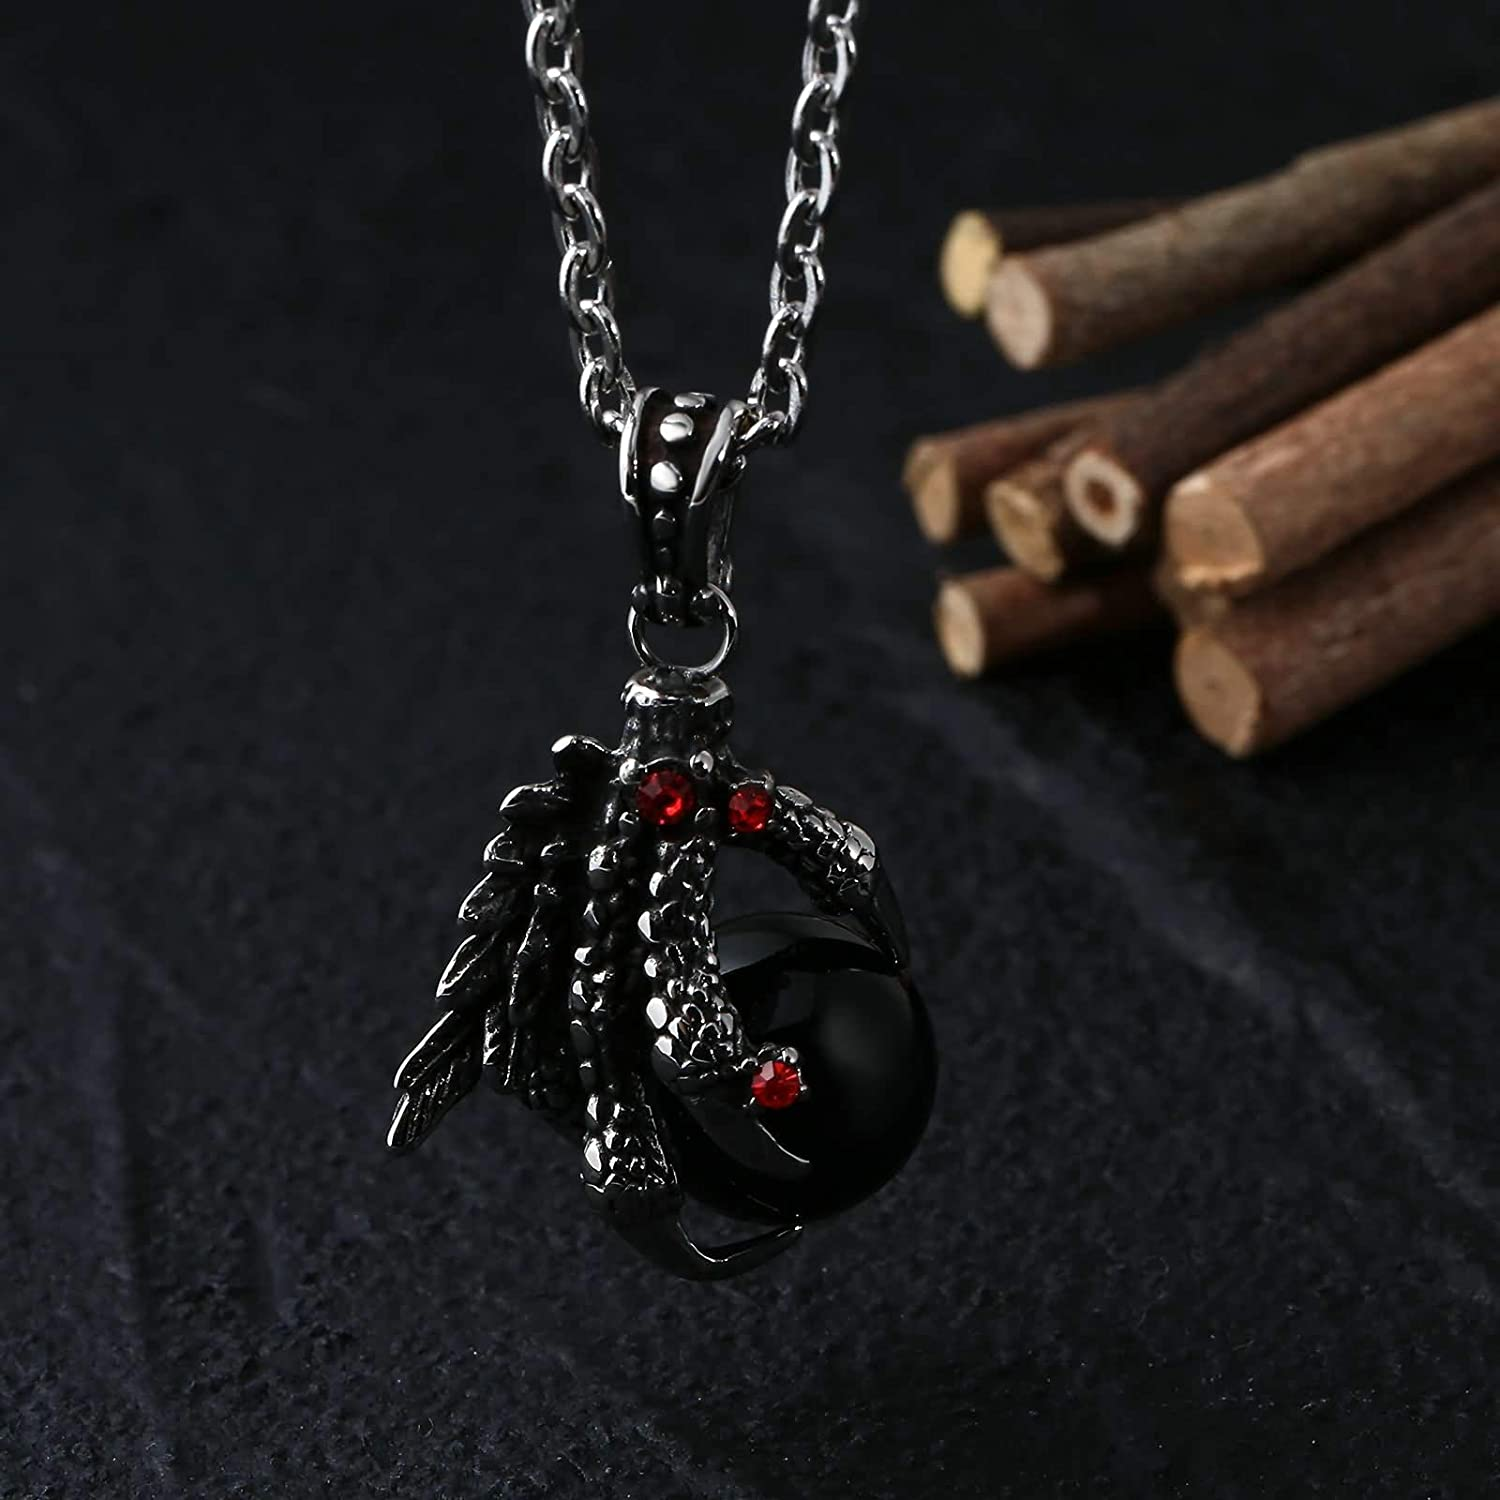 Epinki Stainless Steel Necklace for Men Dragon Claw Ball Necklace Vintage Gothic Biker Punk Rock Necklace